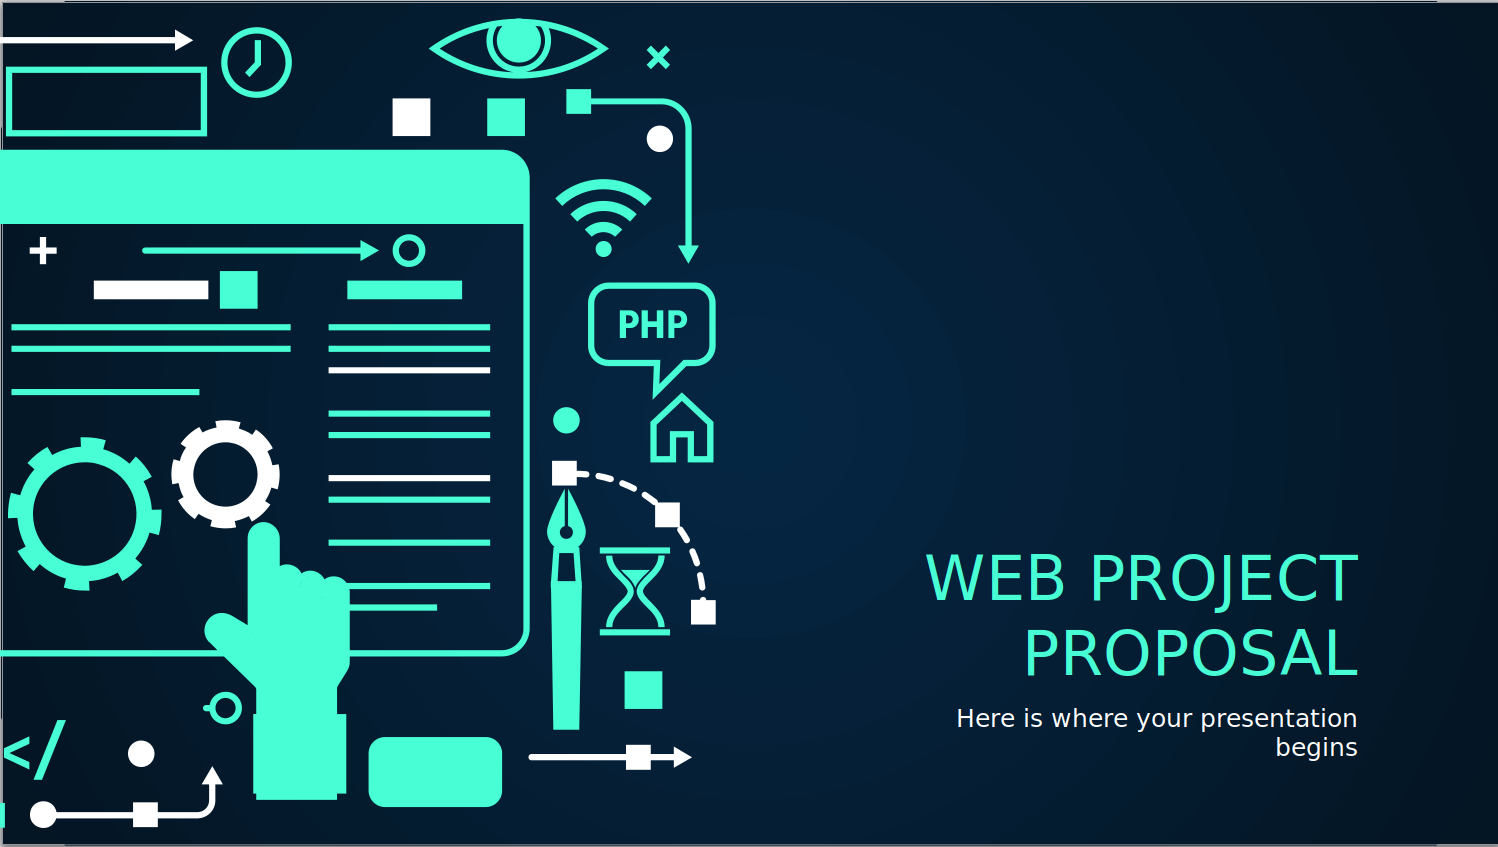 Webproject Proposal PowerPoint template